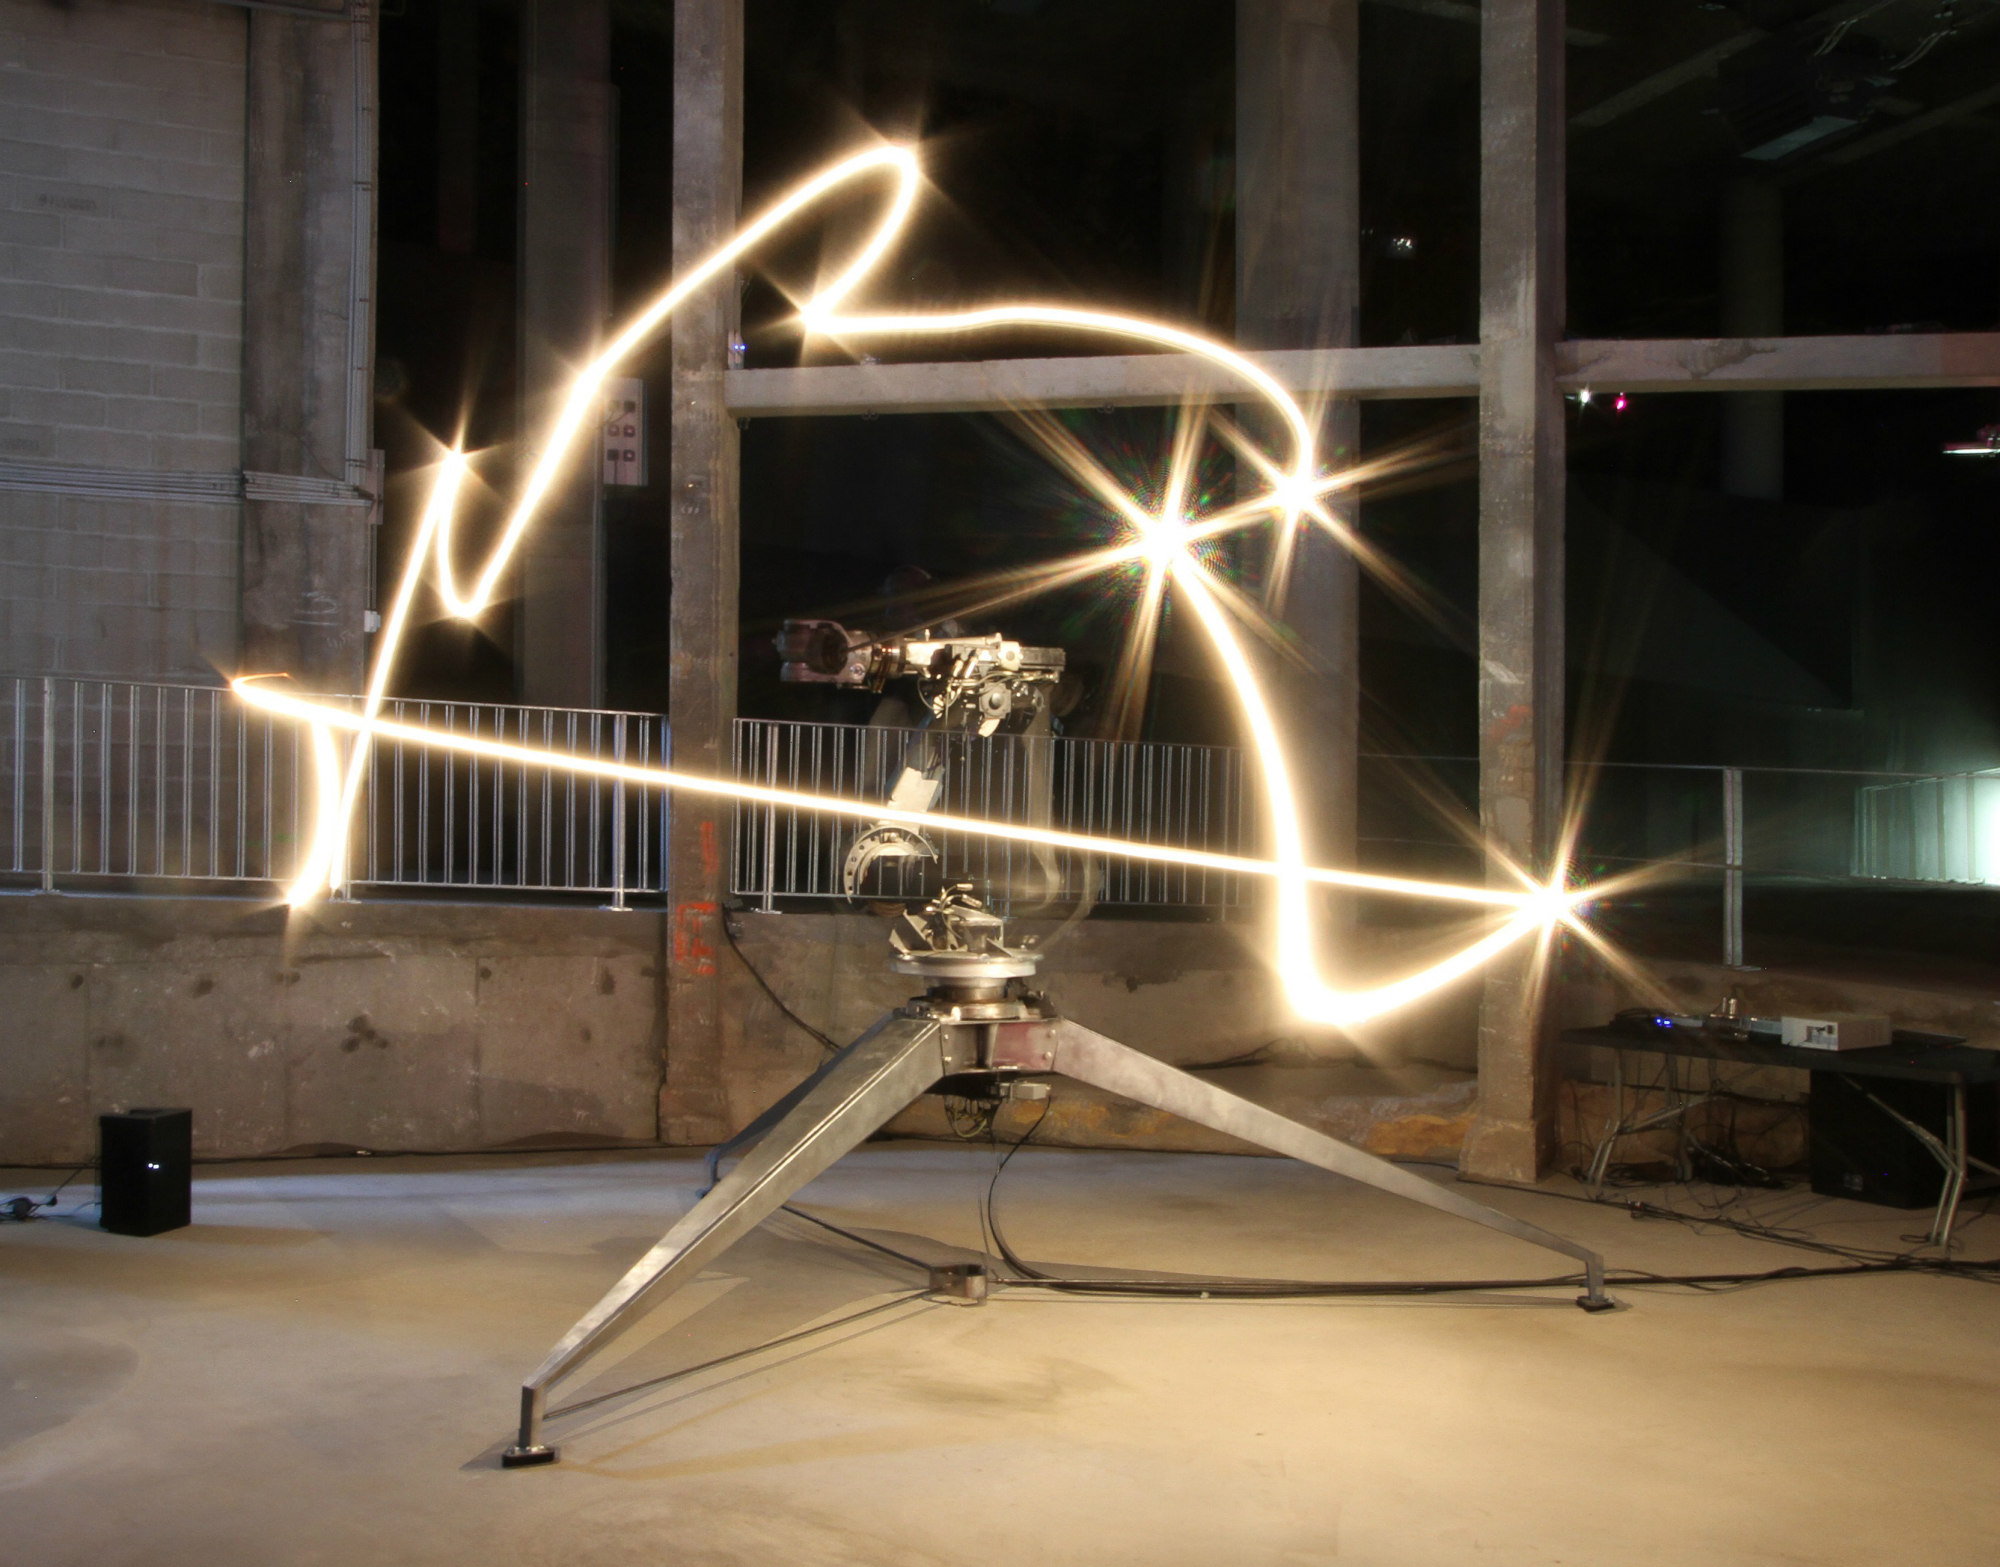 Conrad Shawcross, The ADA Project, 2013. Installation view at Palais de Tokyo, Paris. Courtesy the artist